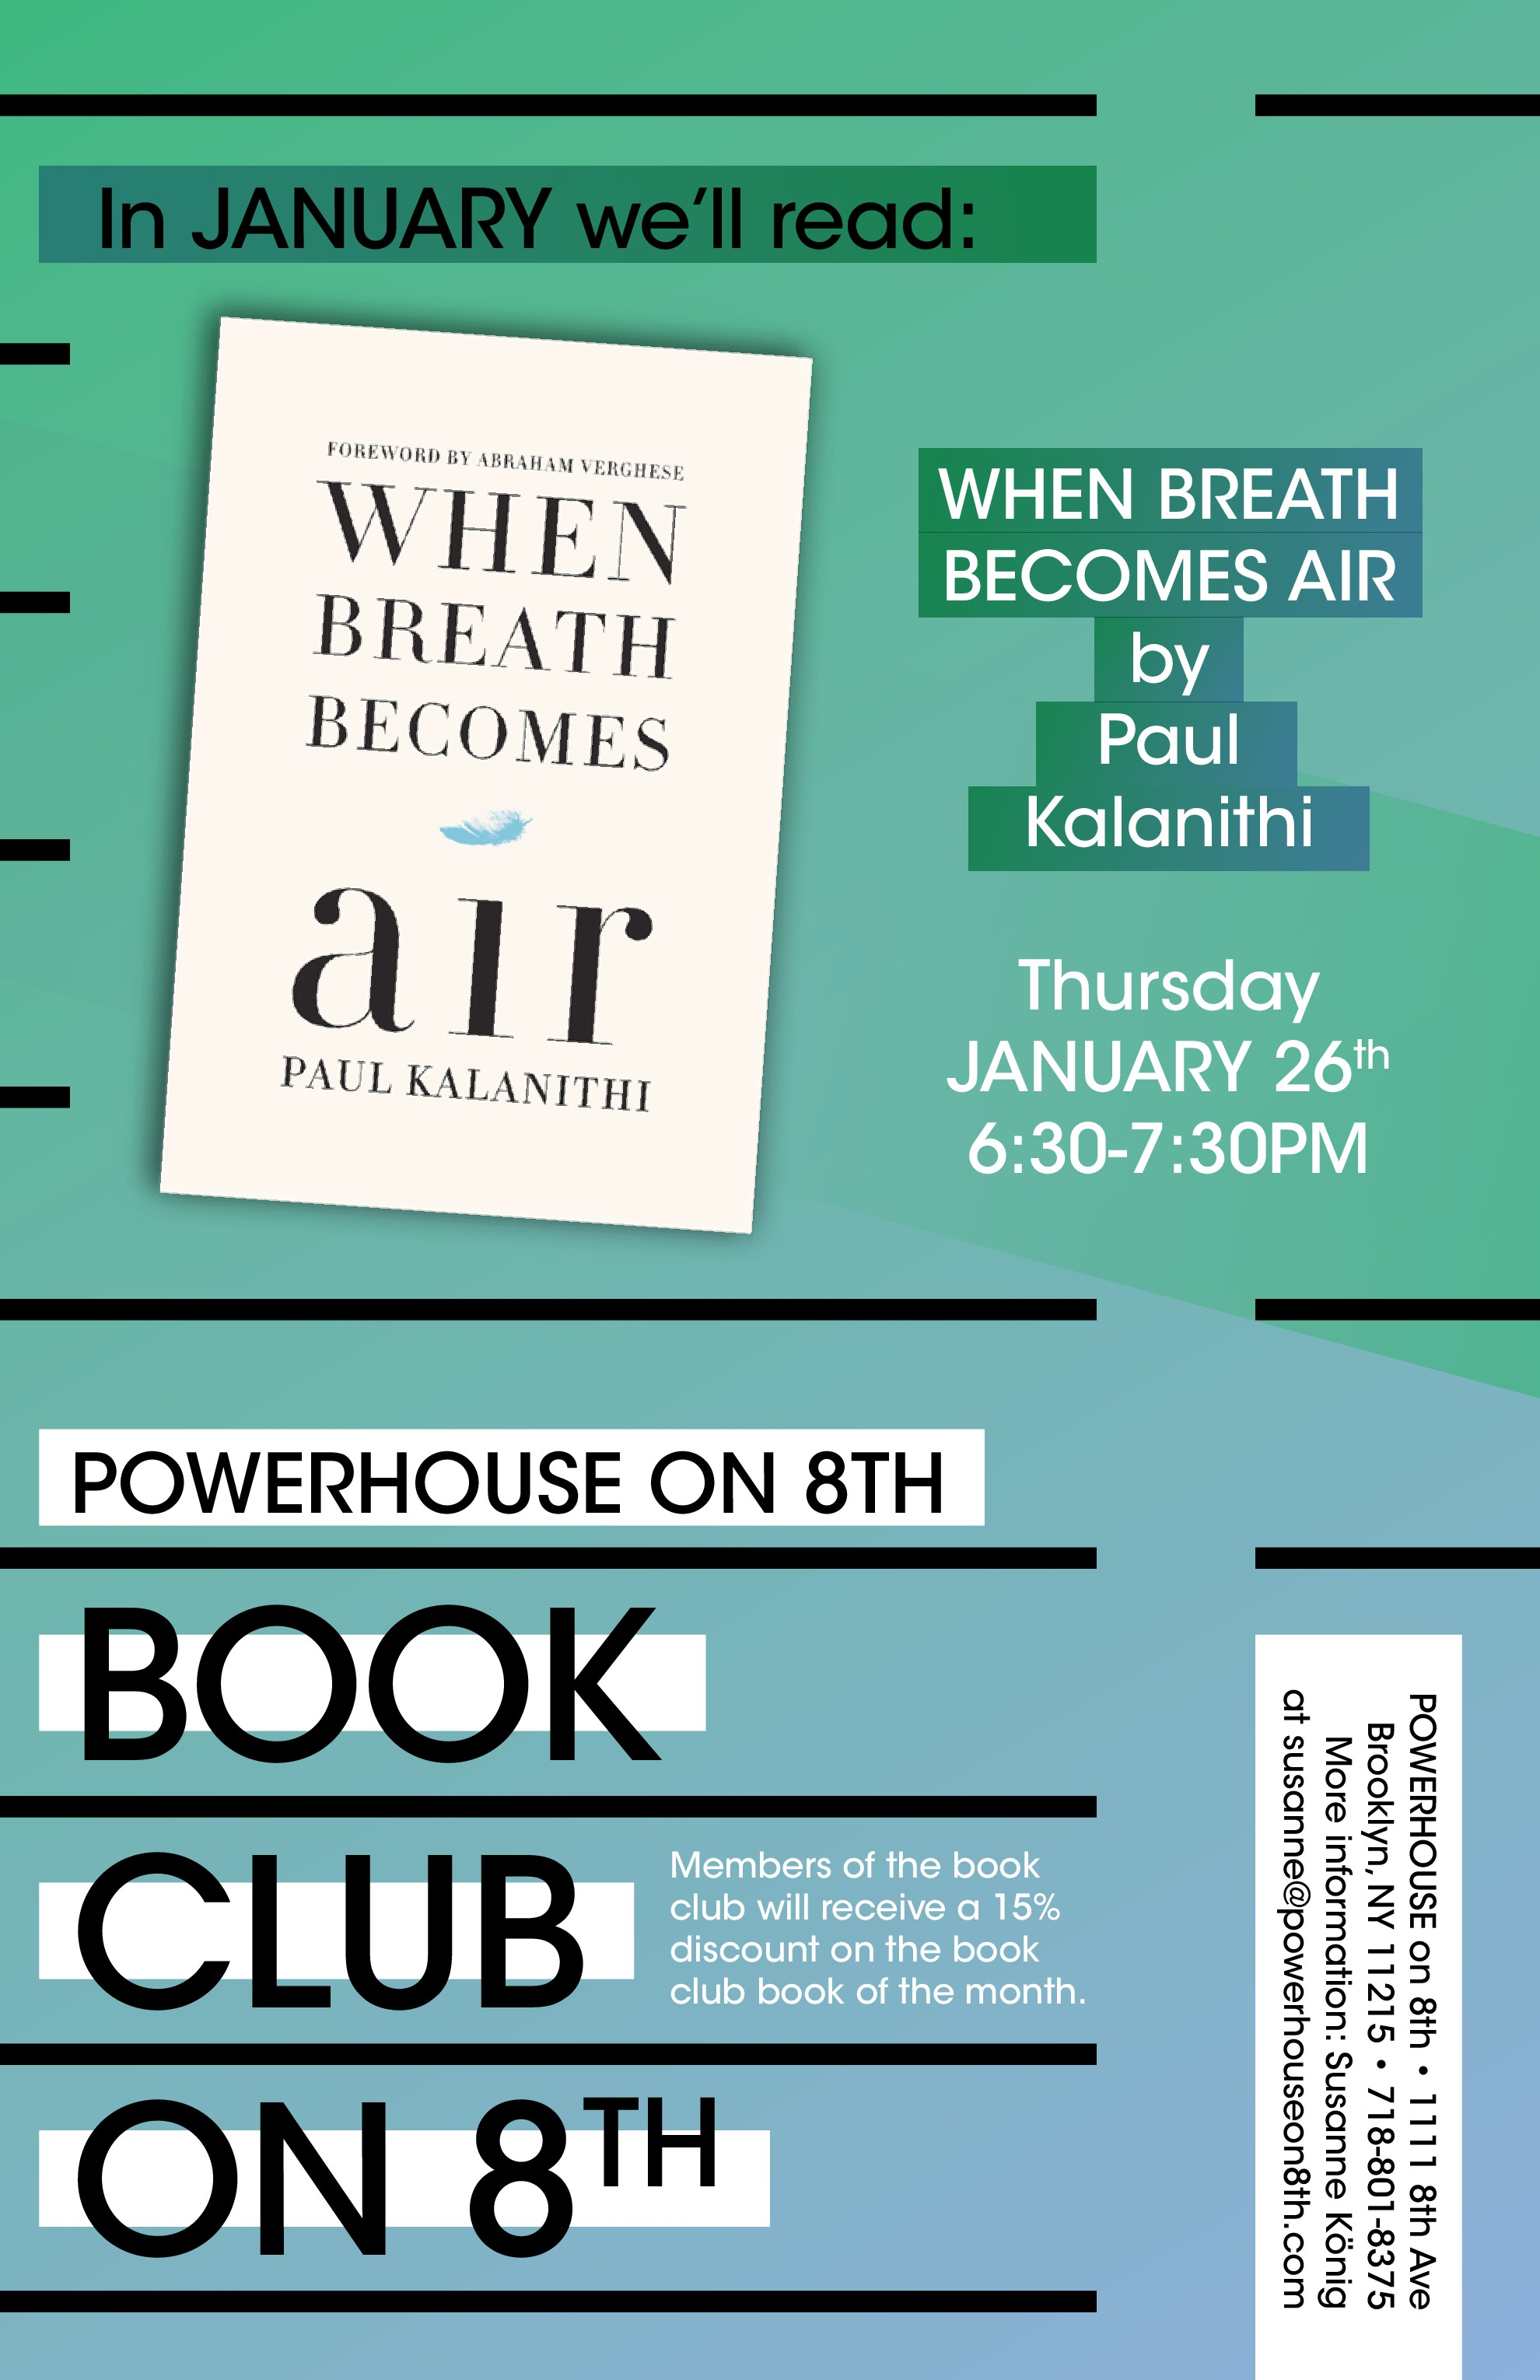 Book Club on 8th: When Breath Becomes Air by Paul Kalanithi